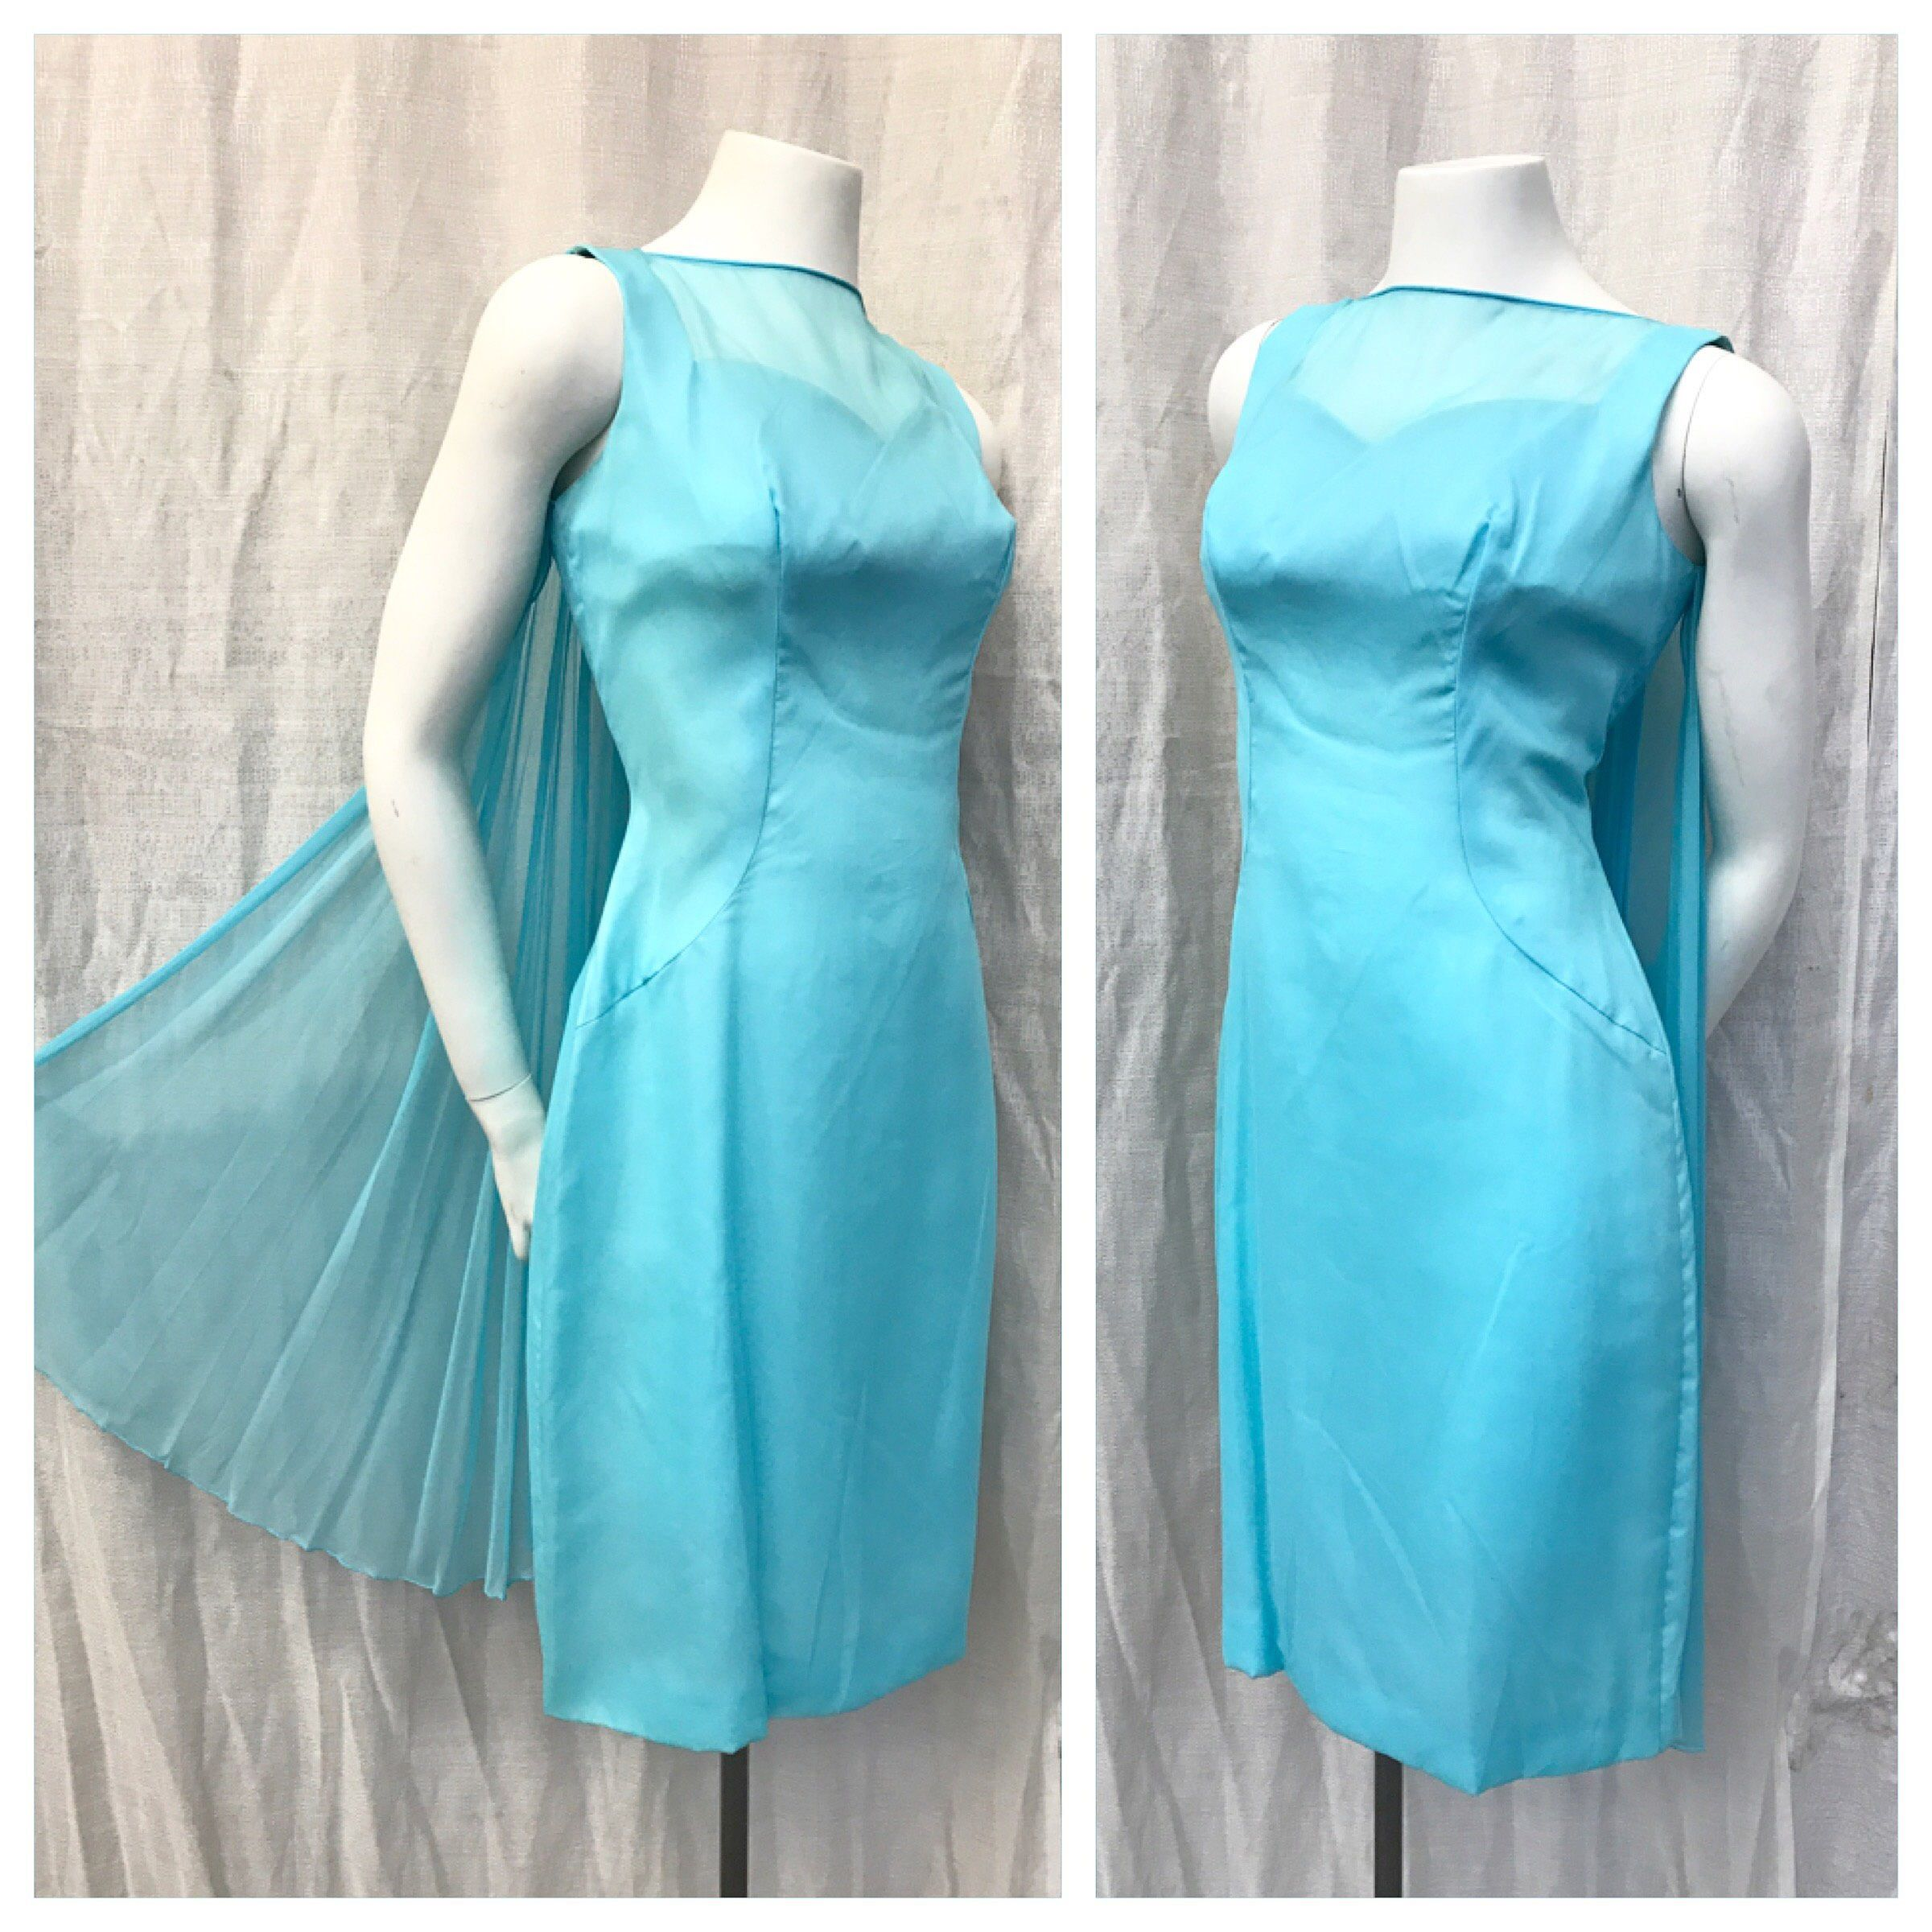 Ice Queen 1950 S 1960 S Vinage 50s 60s Holiday Turquoise Blue Silk Chiffon Cocktail Party Evening Dress W Double Back Train Sash Rosette M Dresses Vintage Dresses Silk Chiffon [ 2401 x 2401 Pixel ]